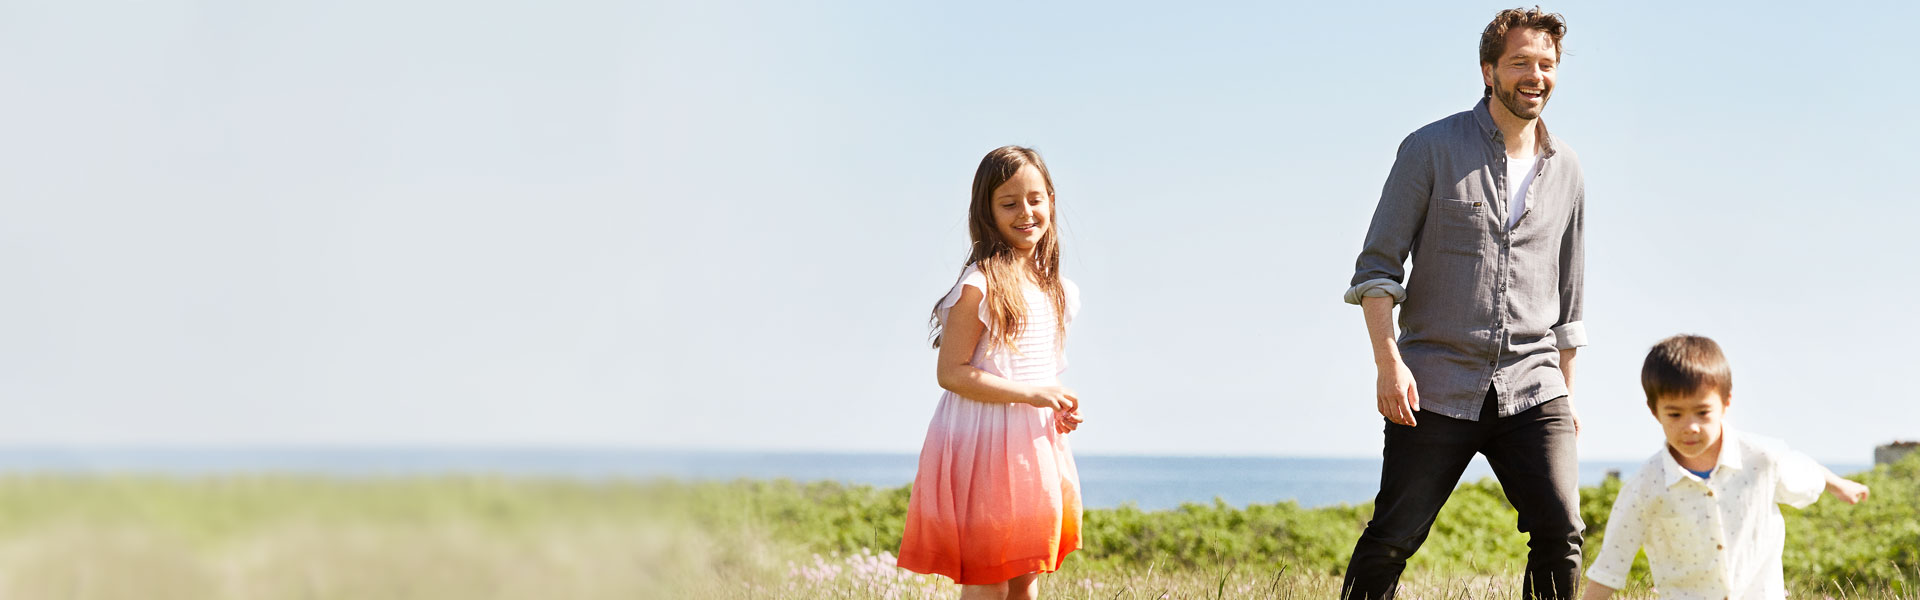 1920x600-Implant-solutions-for-children-and-adults